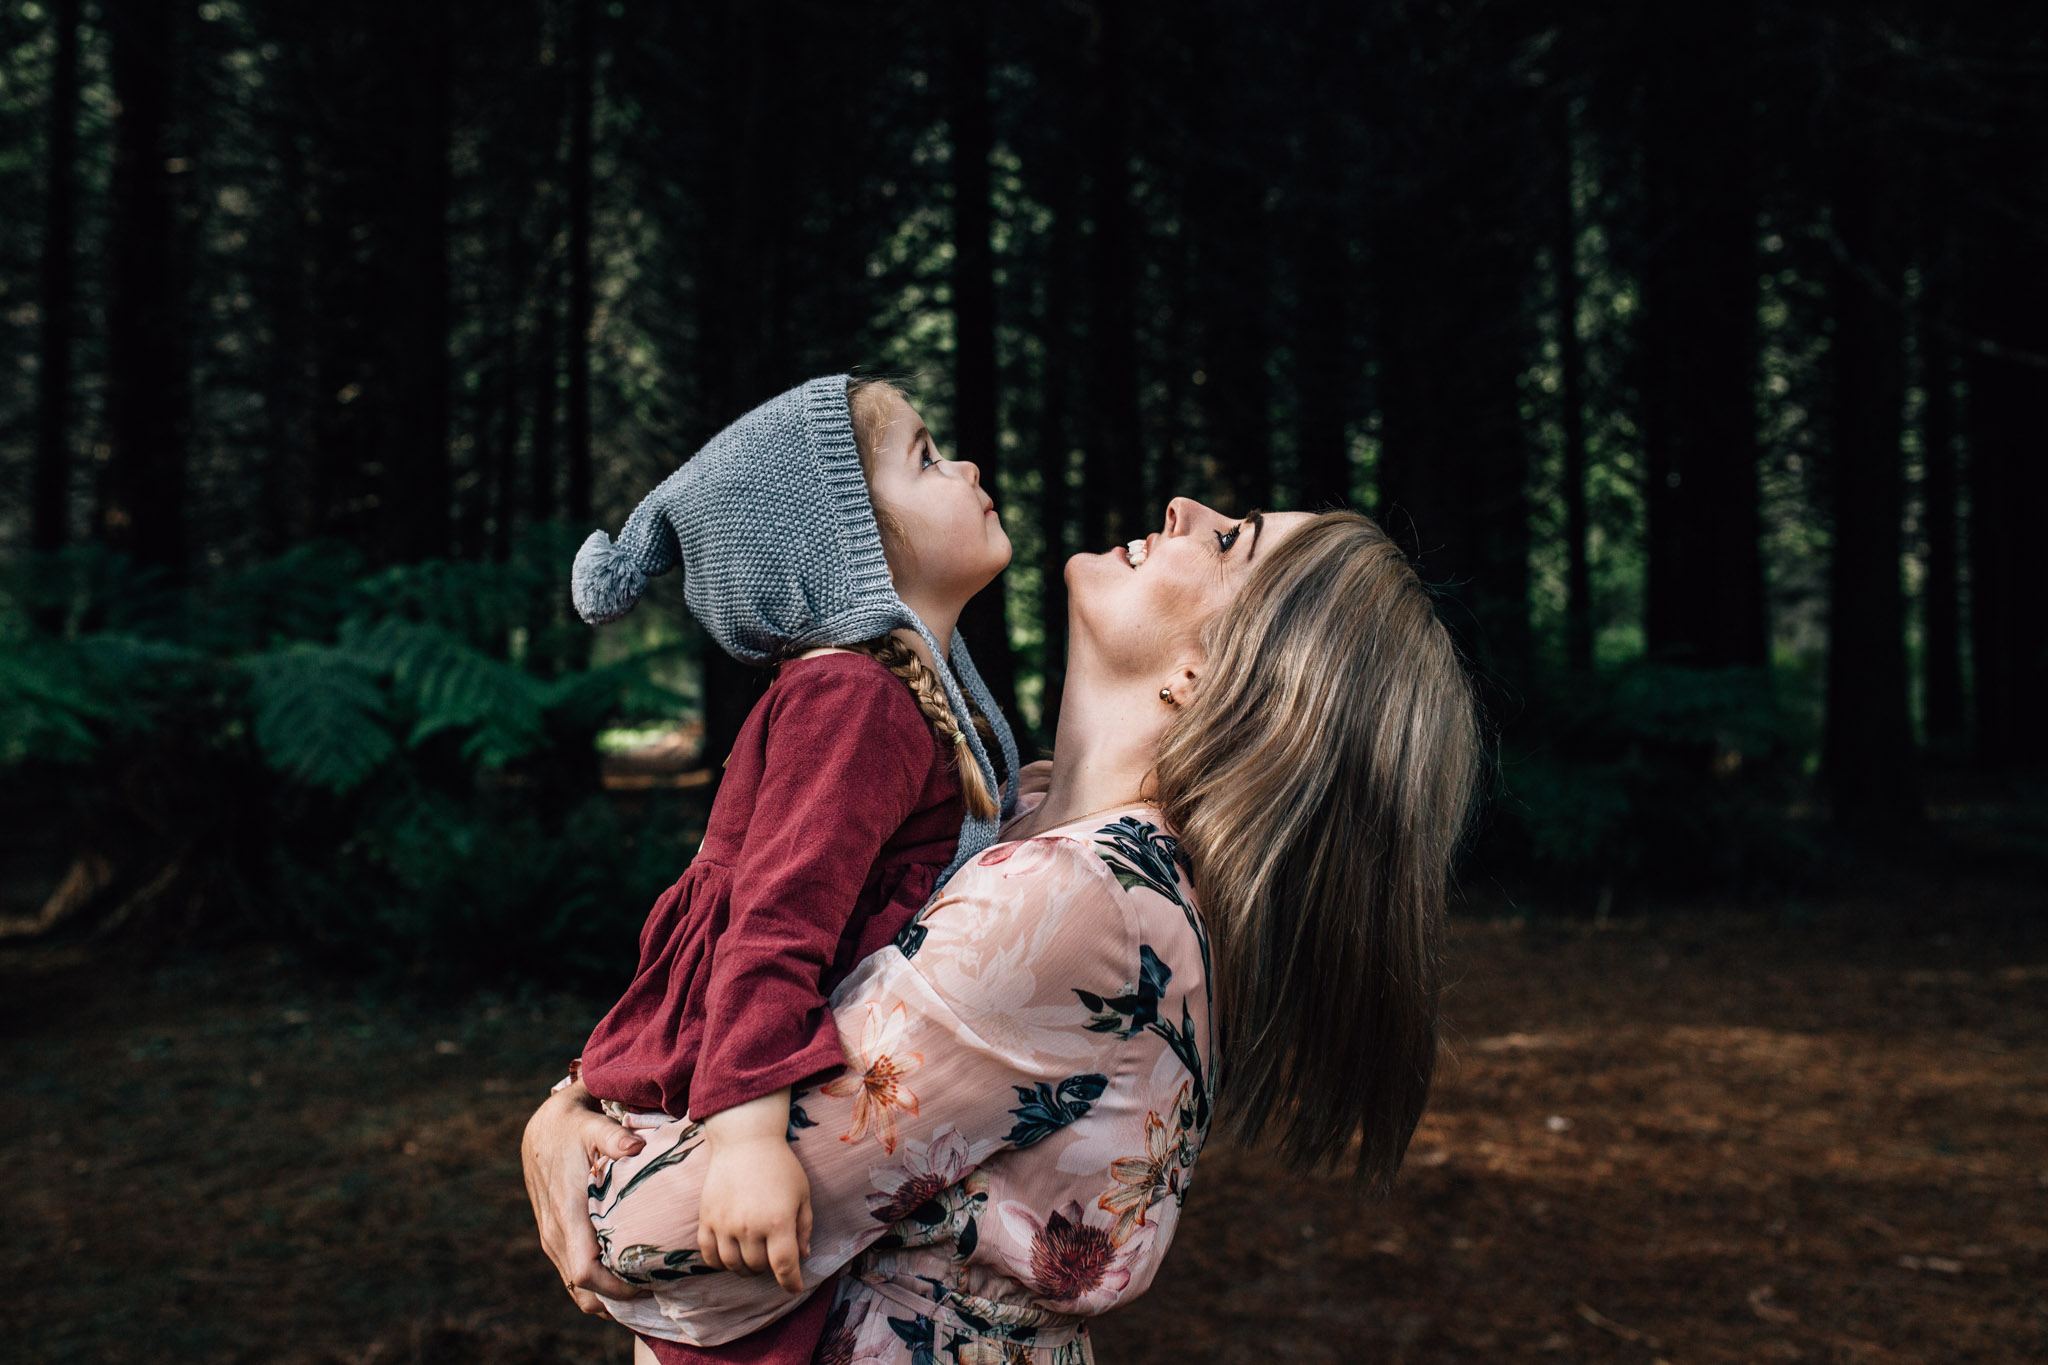 mother-and-daughter-in-forest-I (1 of 1).jpg